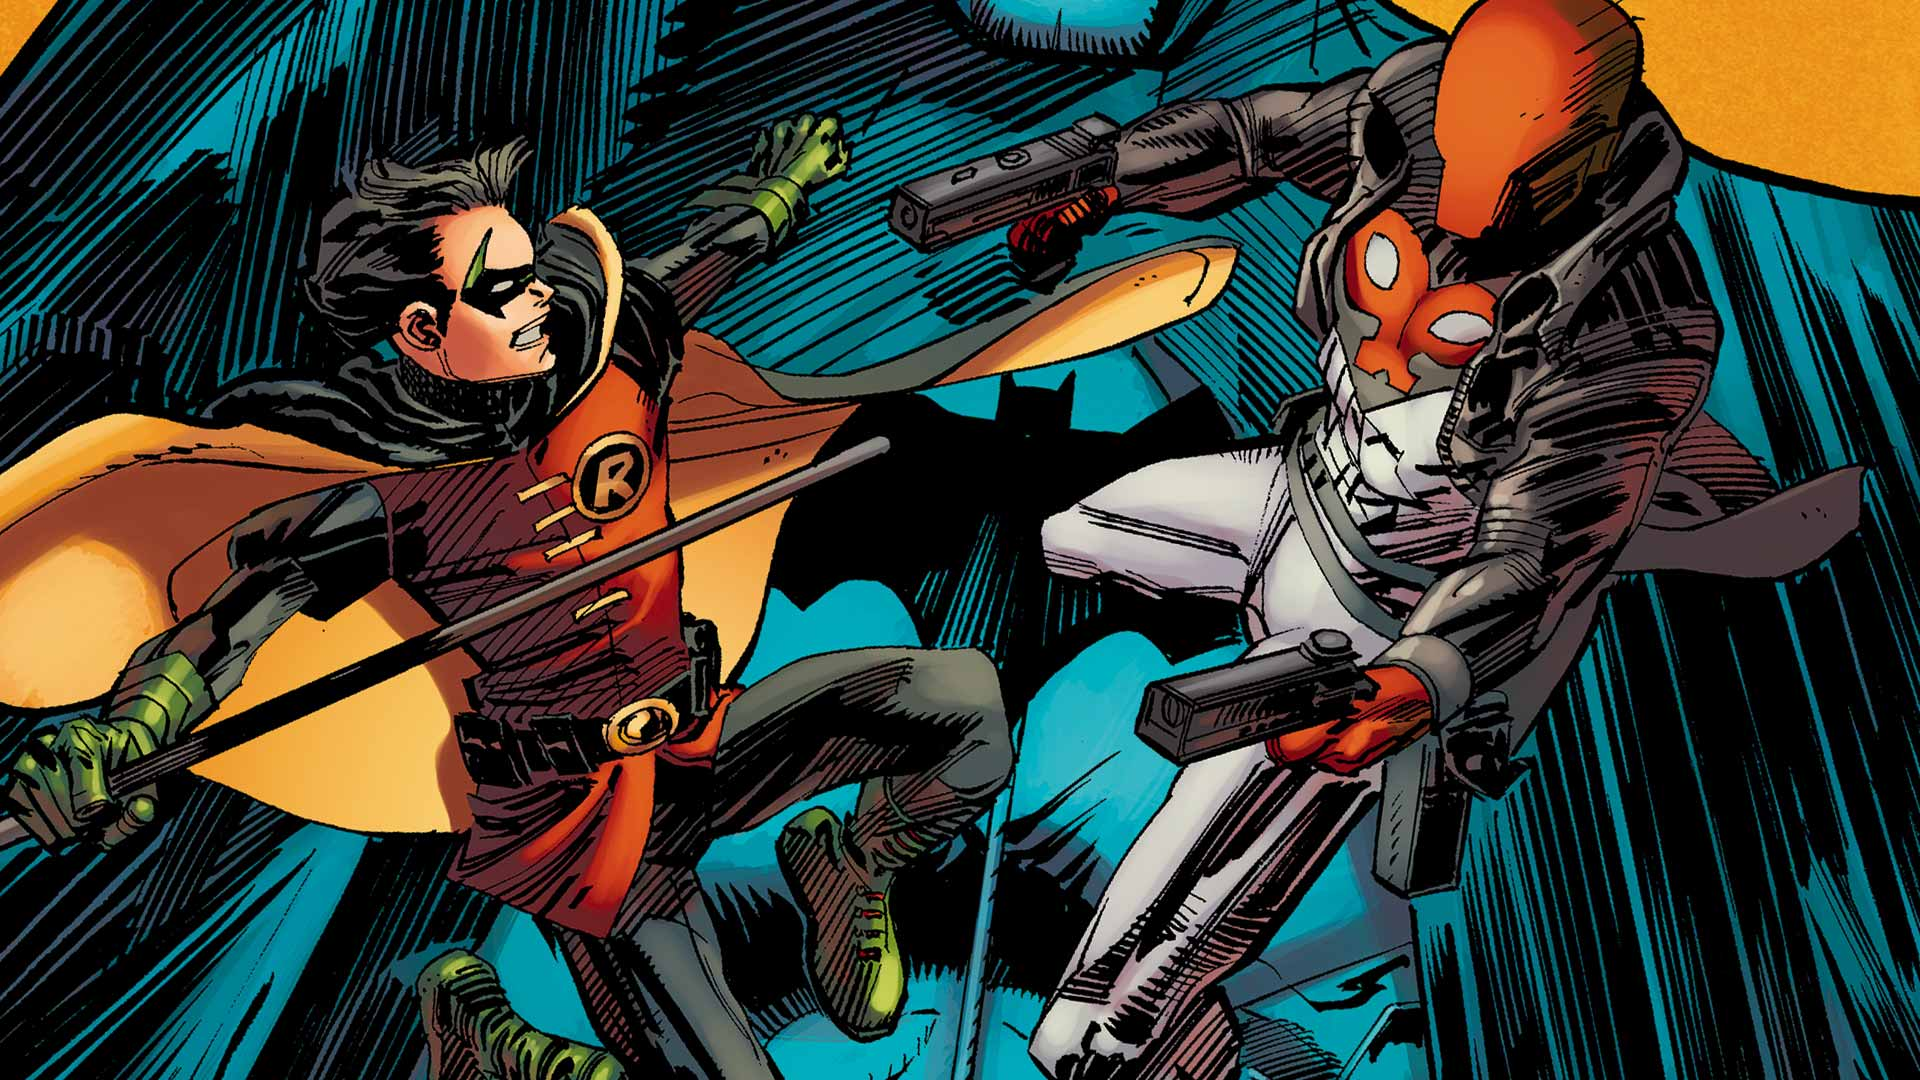 Batman & Robin #12